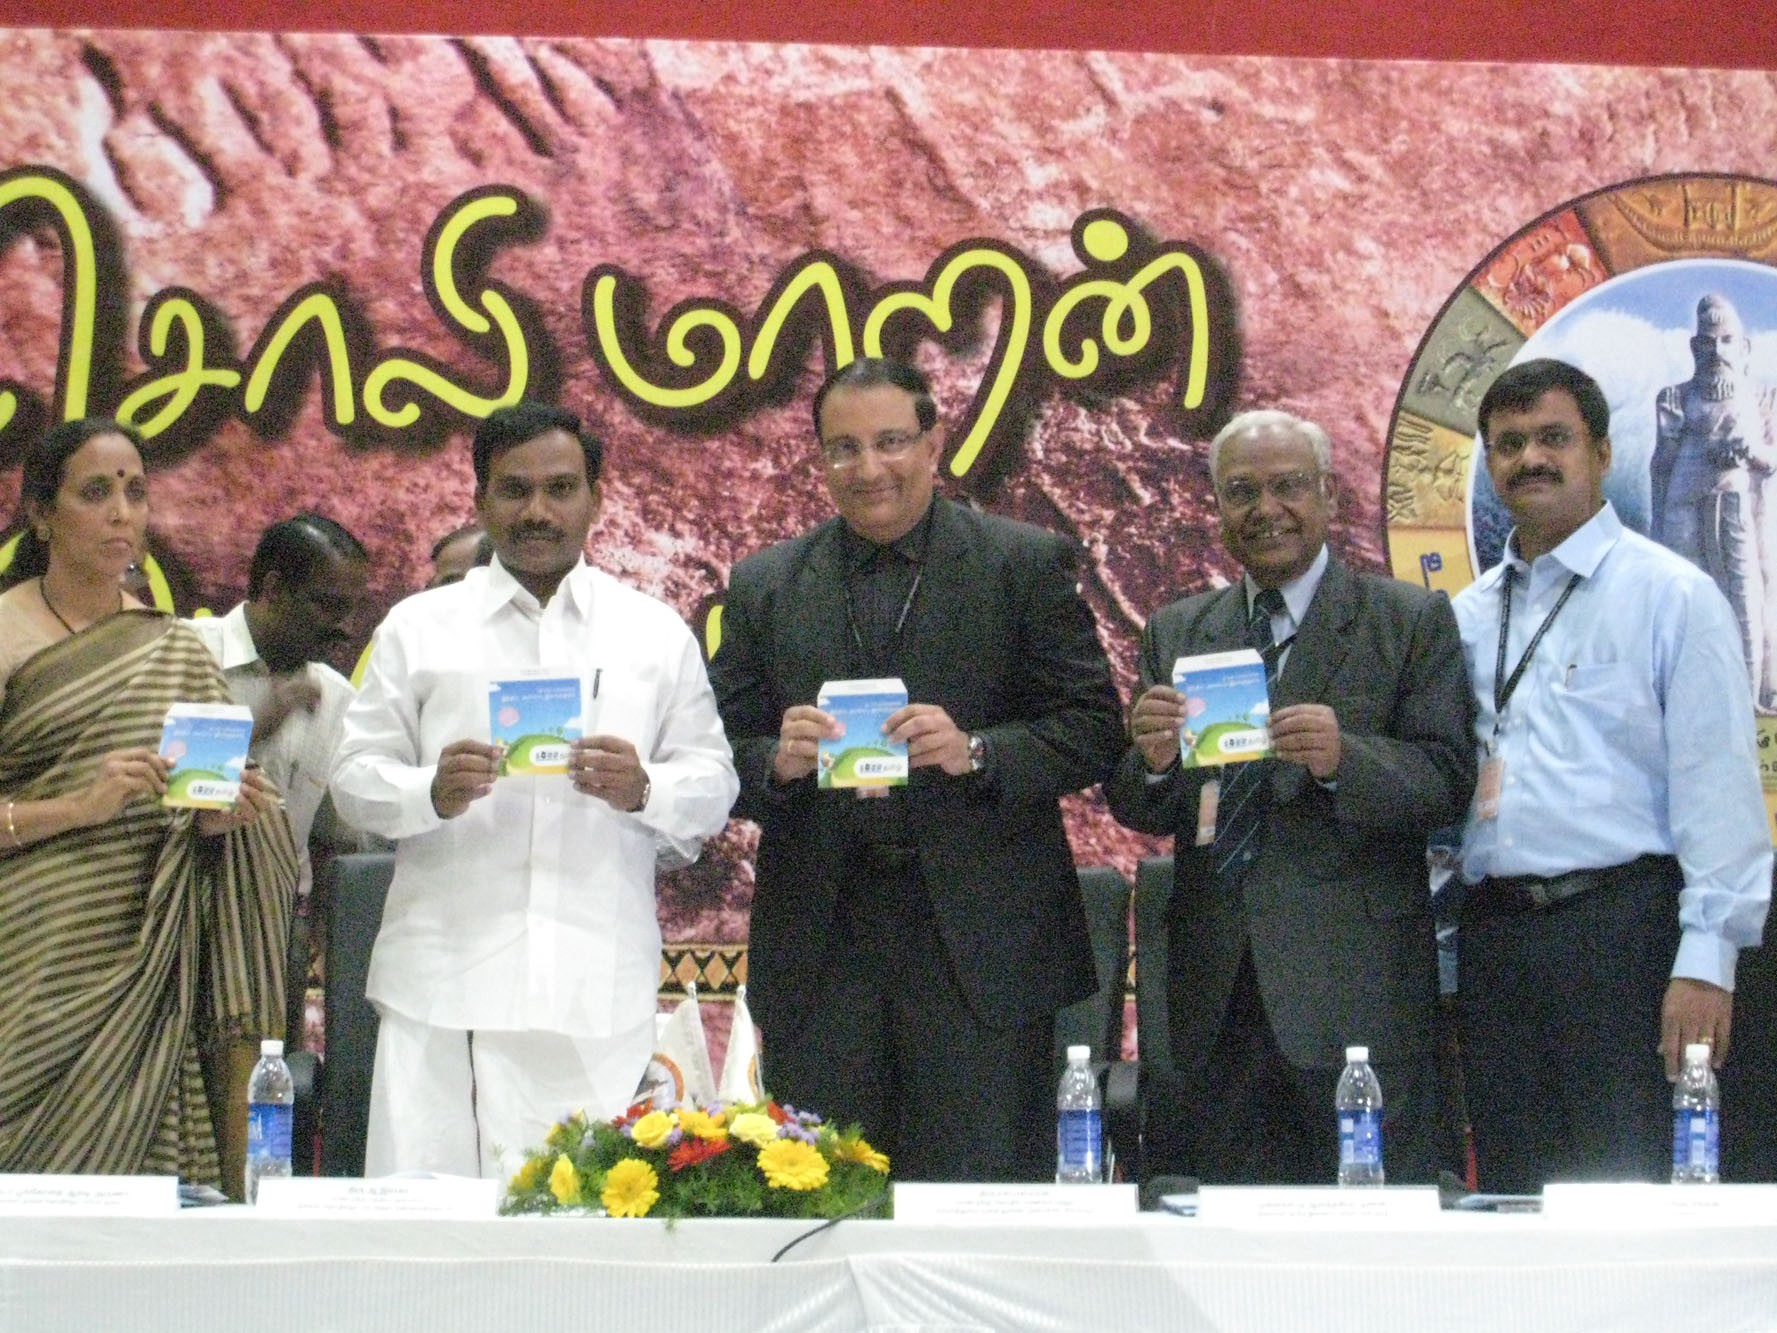 Tamil Internet 2010 – (left to right) Tamil Nadu Minister Ms.Poongothai, Central Minister Thiru. A.Raja, Singapore Senior Minister Thiru. Iswaran, Prof. M.Anandakrishnan & Mr. T.N.C.Venkatarangan